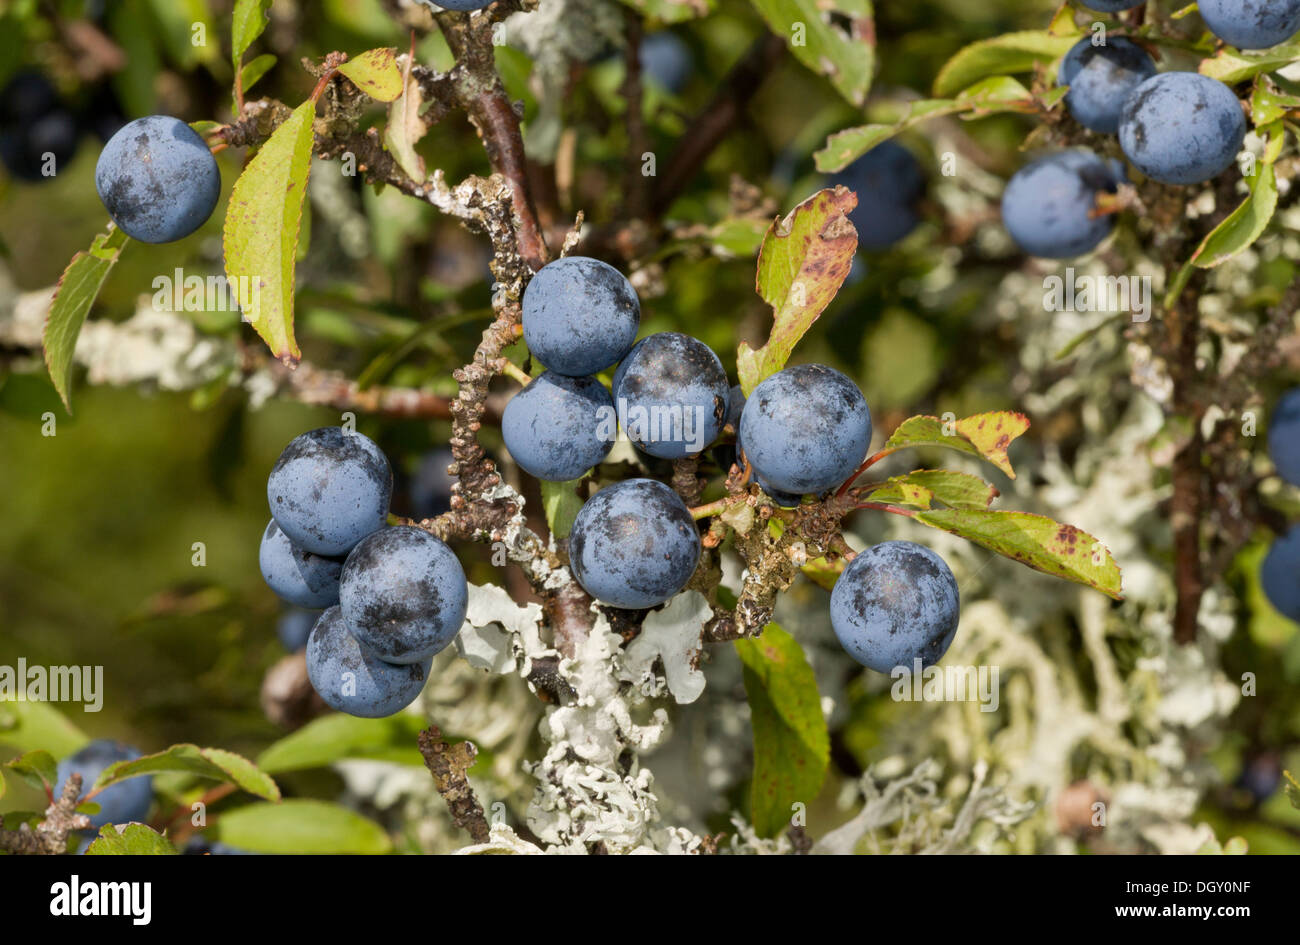 Prunus spinosa 20 seeds Sloe Blackthorn